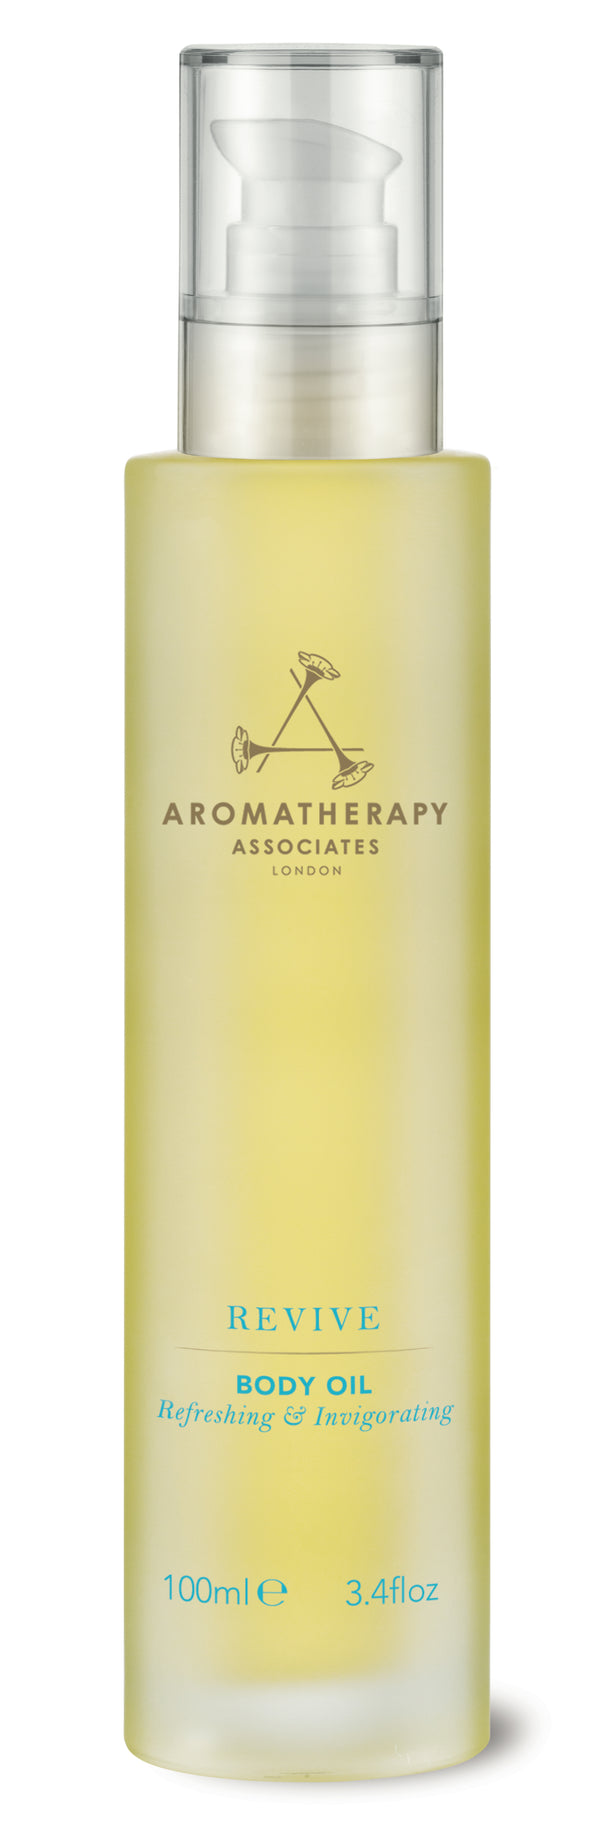 AROMATHERAPY ASSOCIATES Revive Body Oil